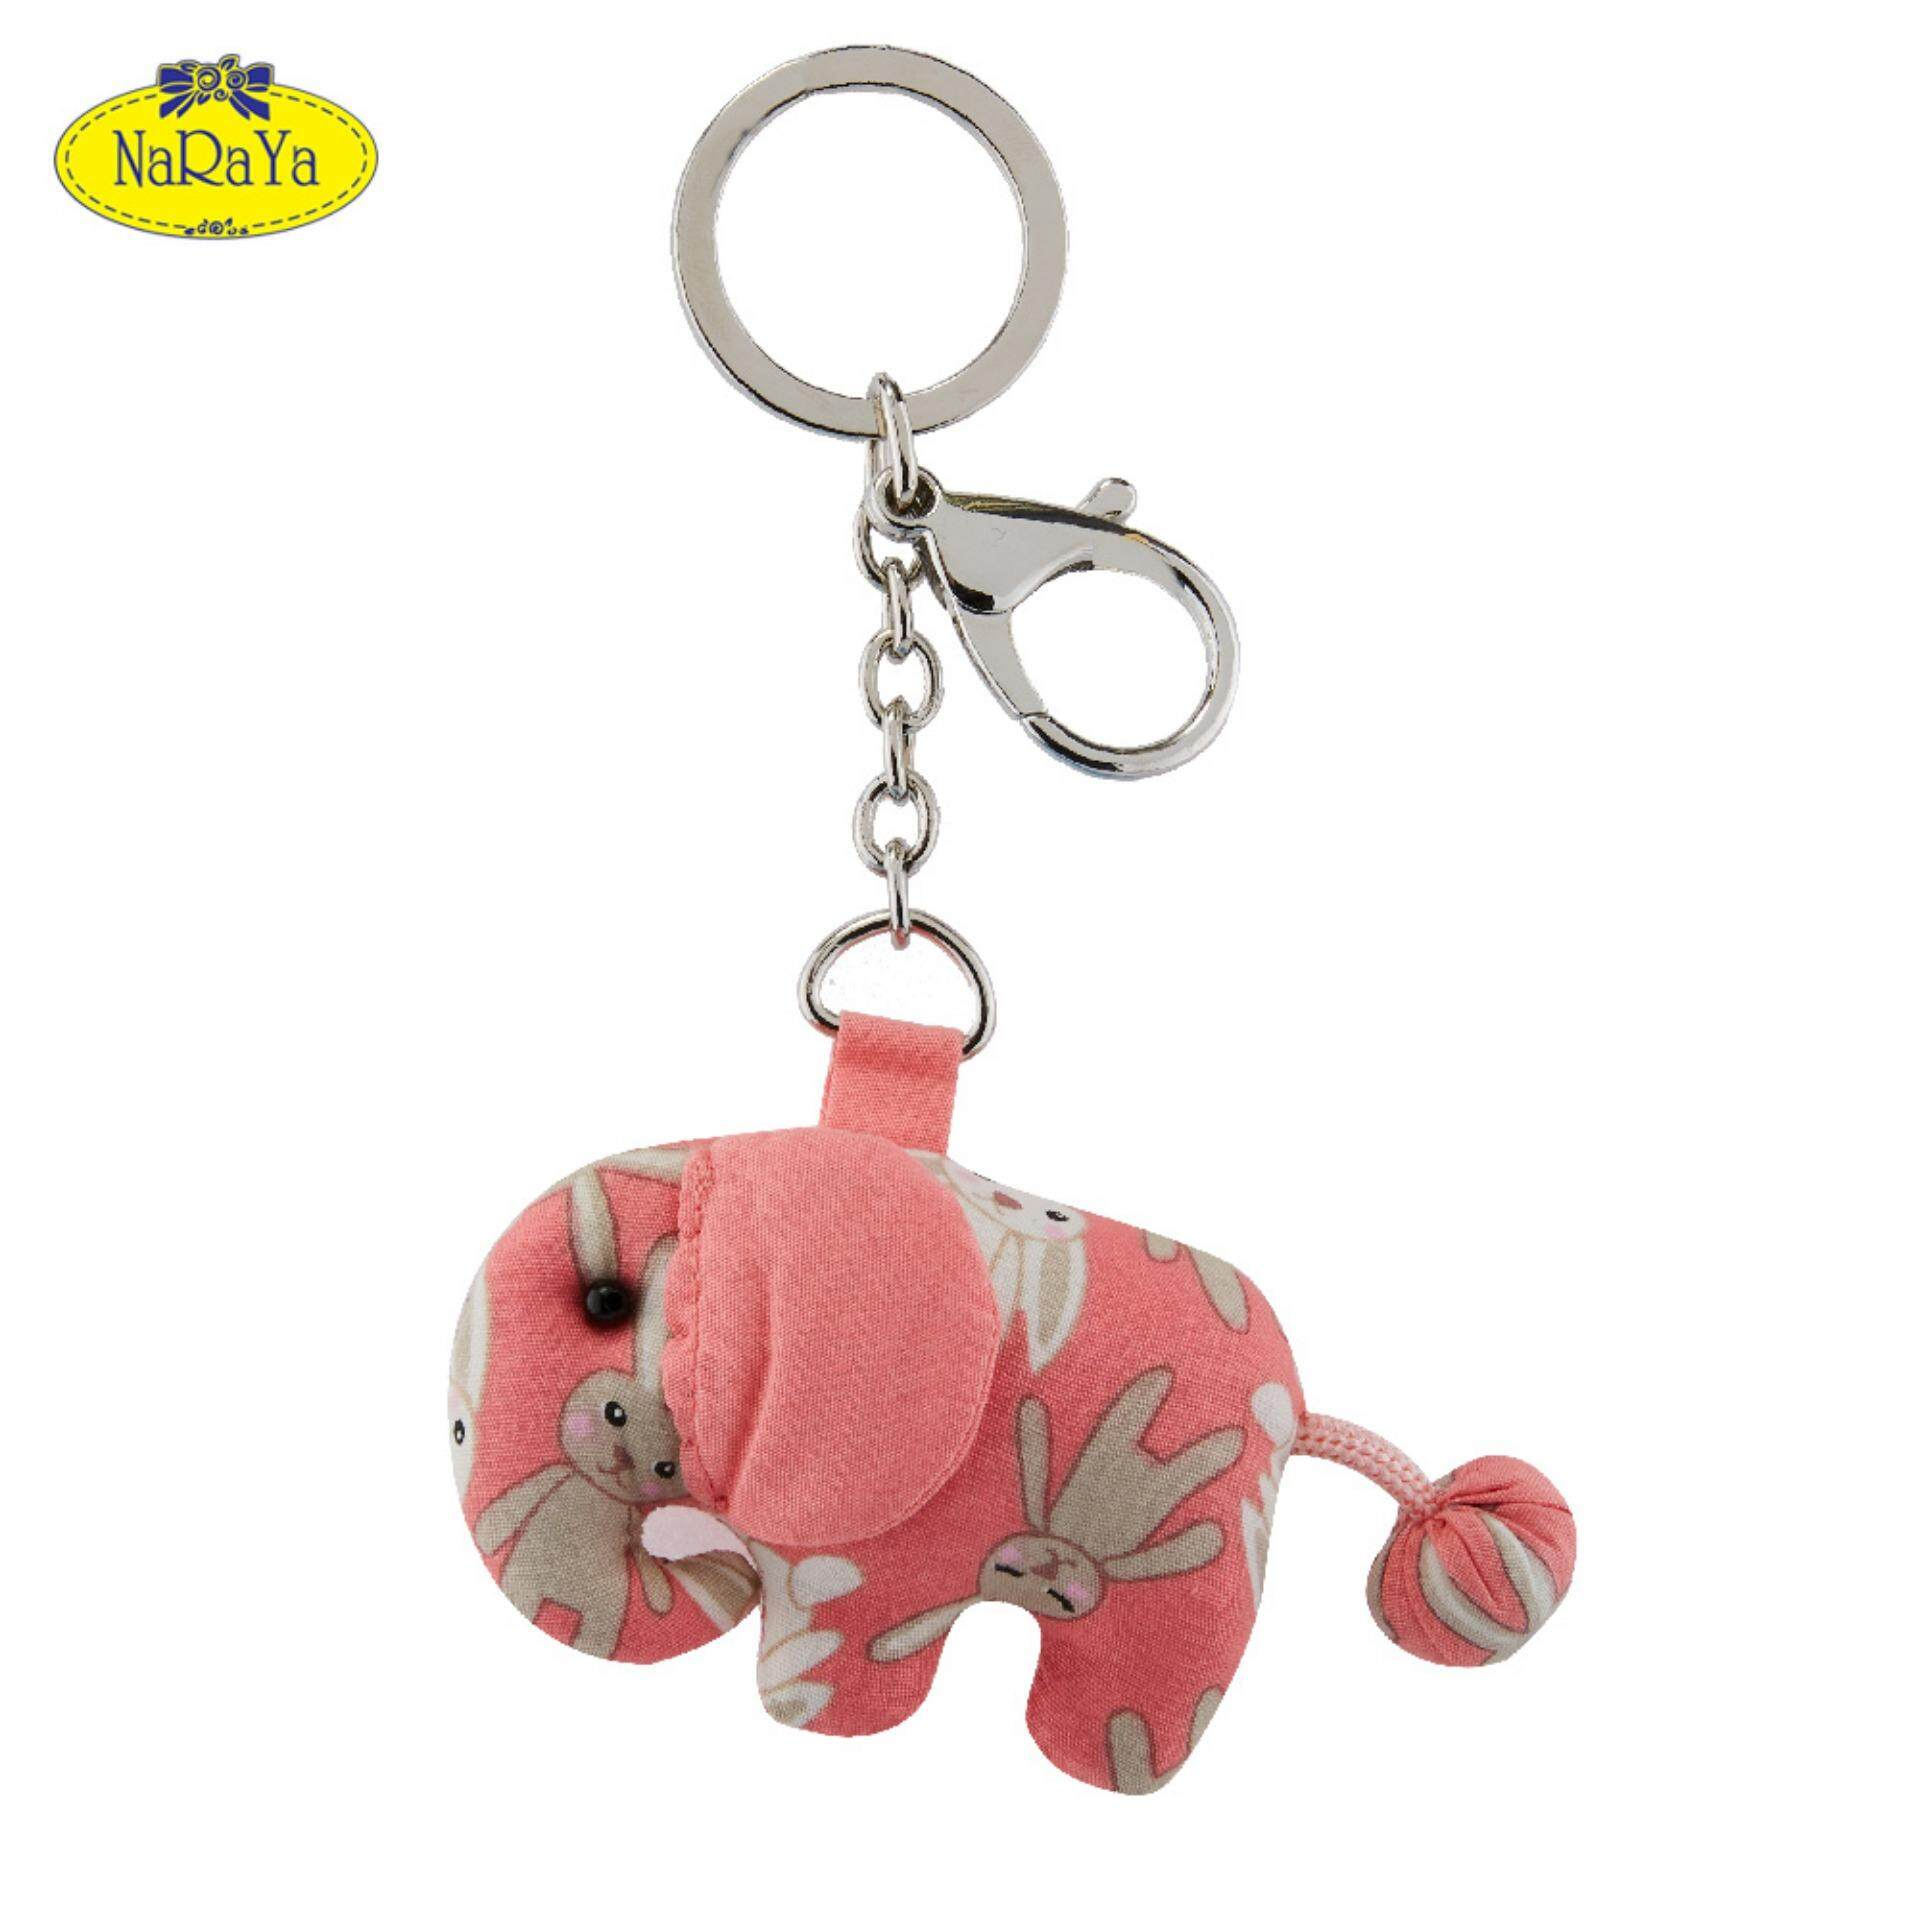 พวงกุญแจ Naraya Bunny Printed Elephant With Hook .